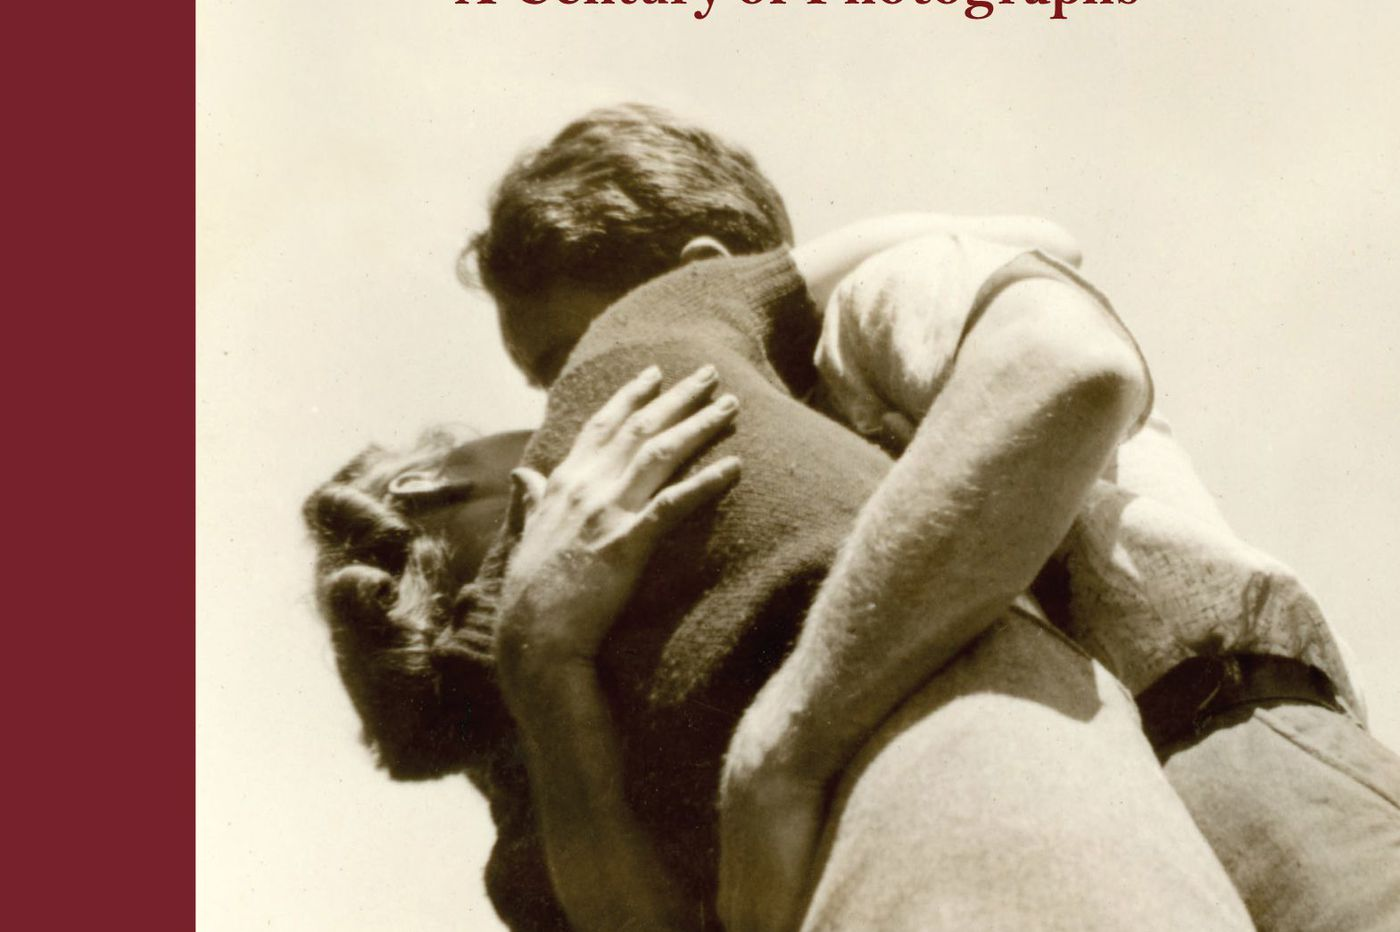 'People Kissing': The history of the kiss in photos, or vice versa